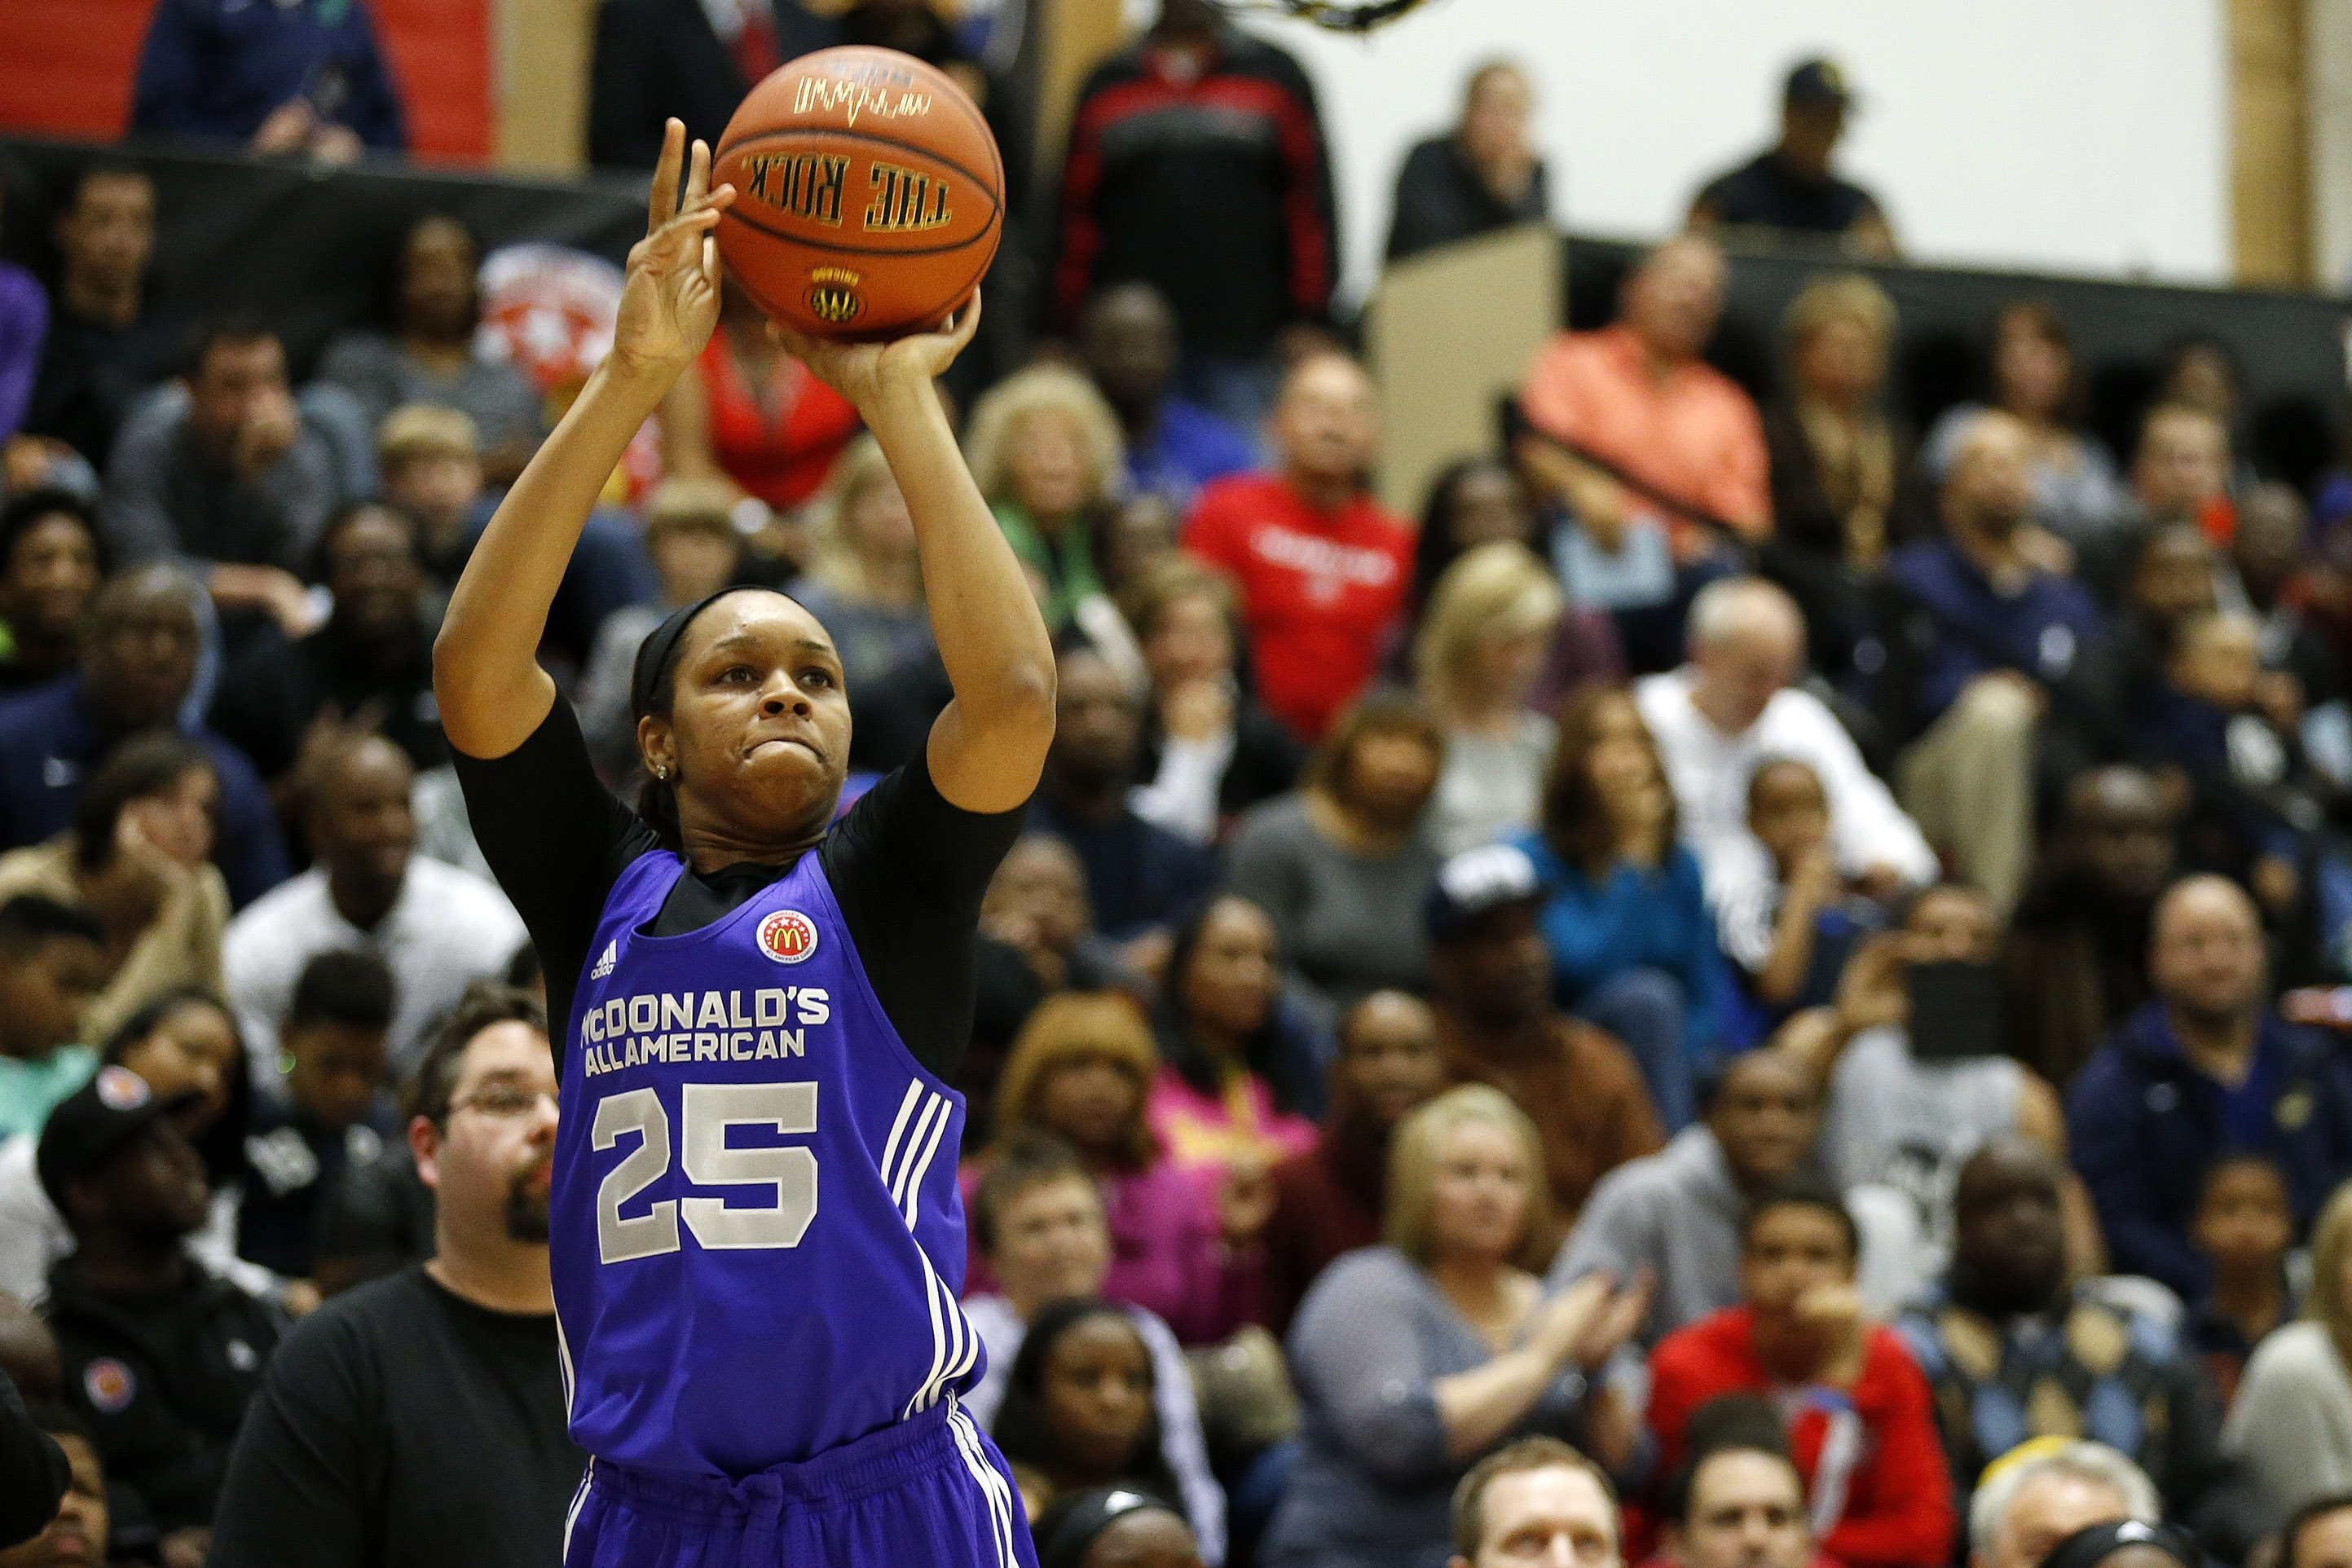 Asia Durr from Atlanta won the 3-point shooting contest at the McDonald's All American Game Jam Fest event (Photo: Associated Press)